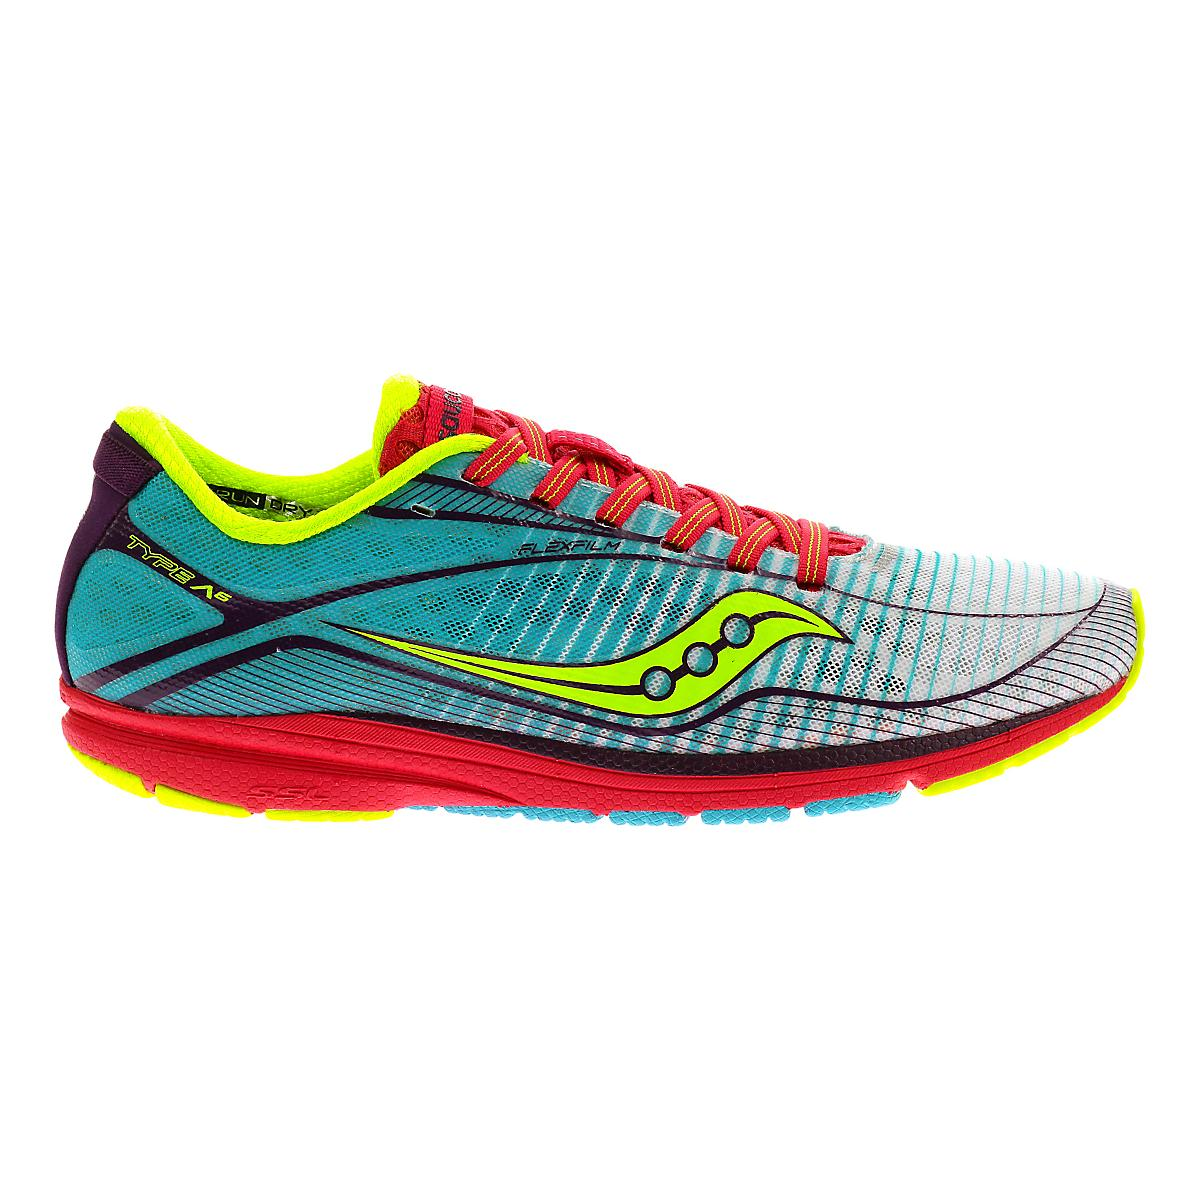 55ef629c Womens Saucony Type A6 Racing Shoe at Road Runner Sports